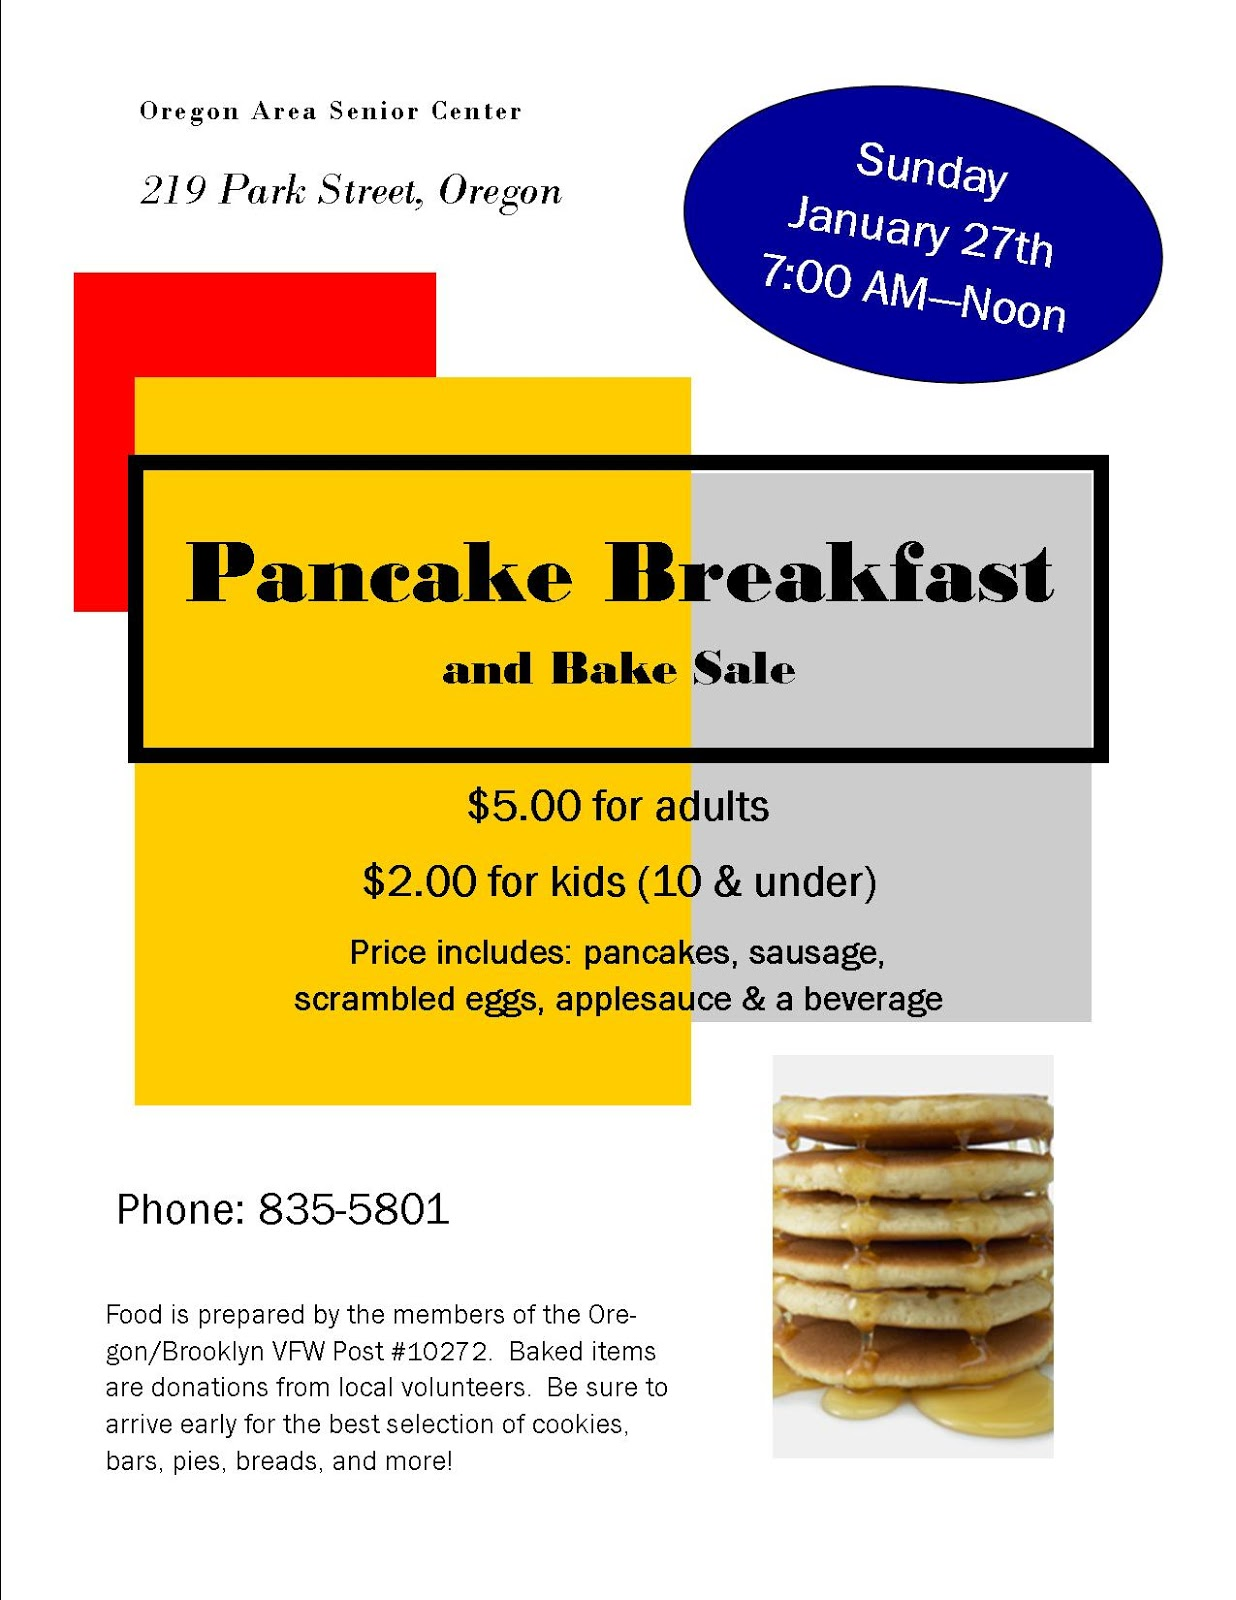 pancake breakfast fundraiser flyer template pancake breakfast fundraiser flyer template dimension n tk